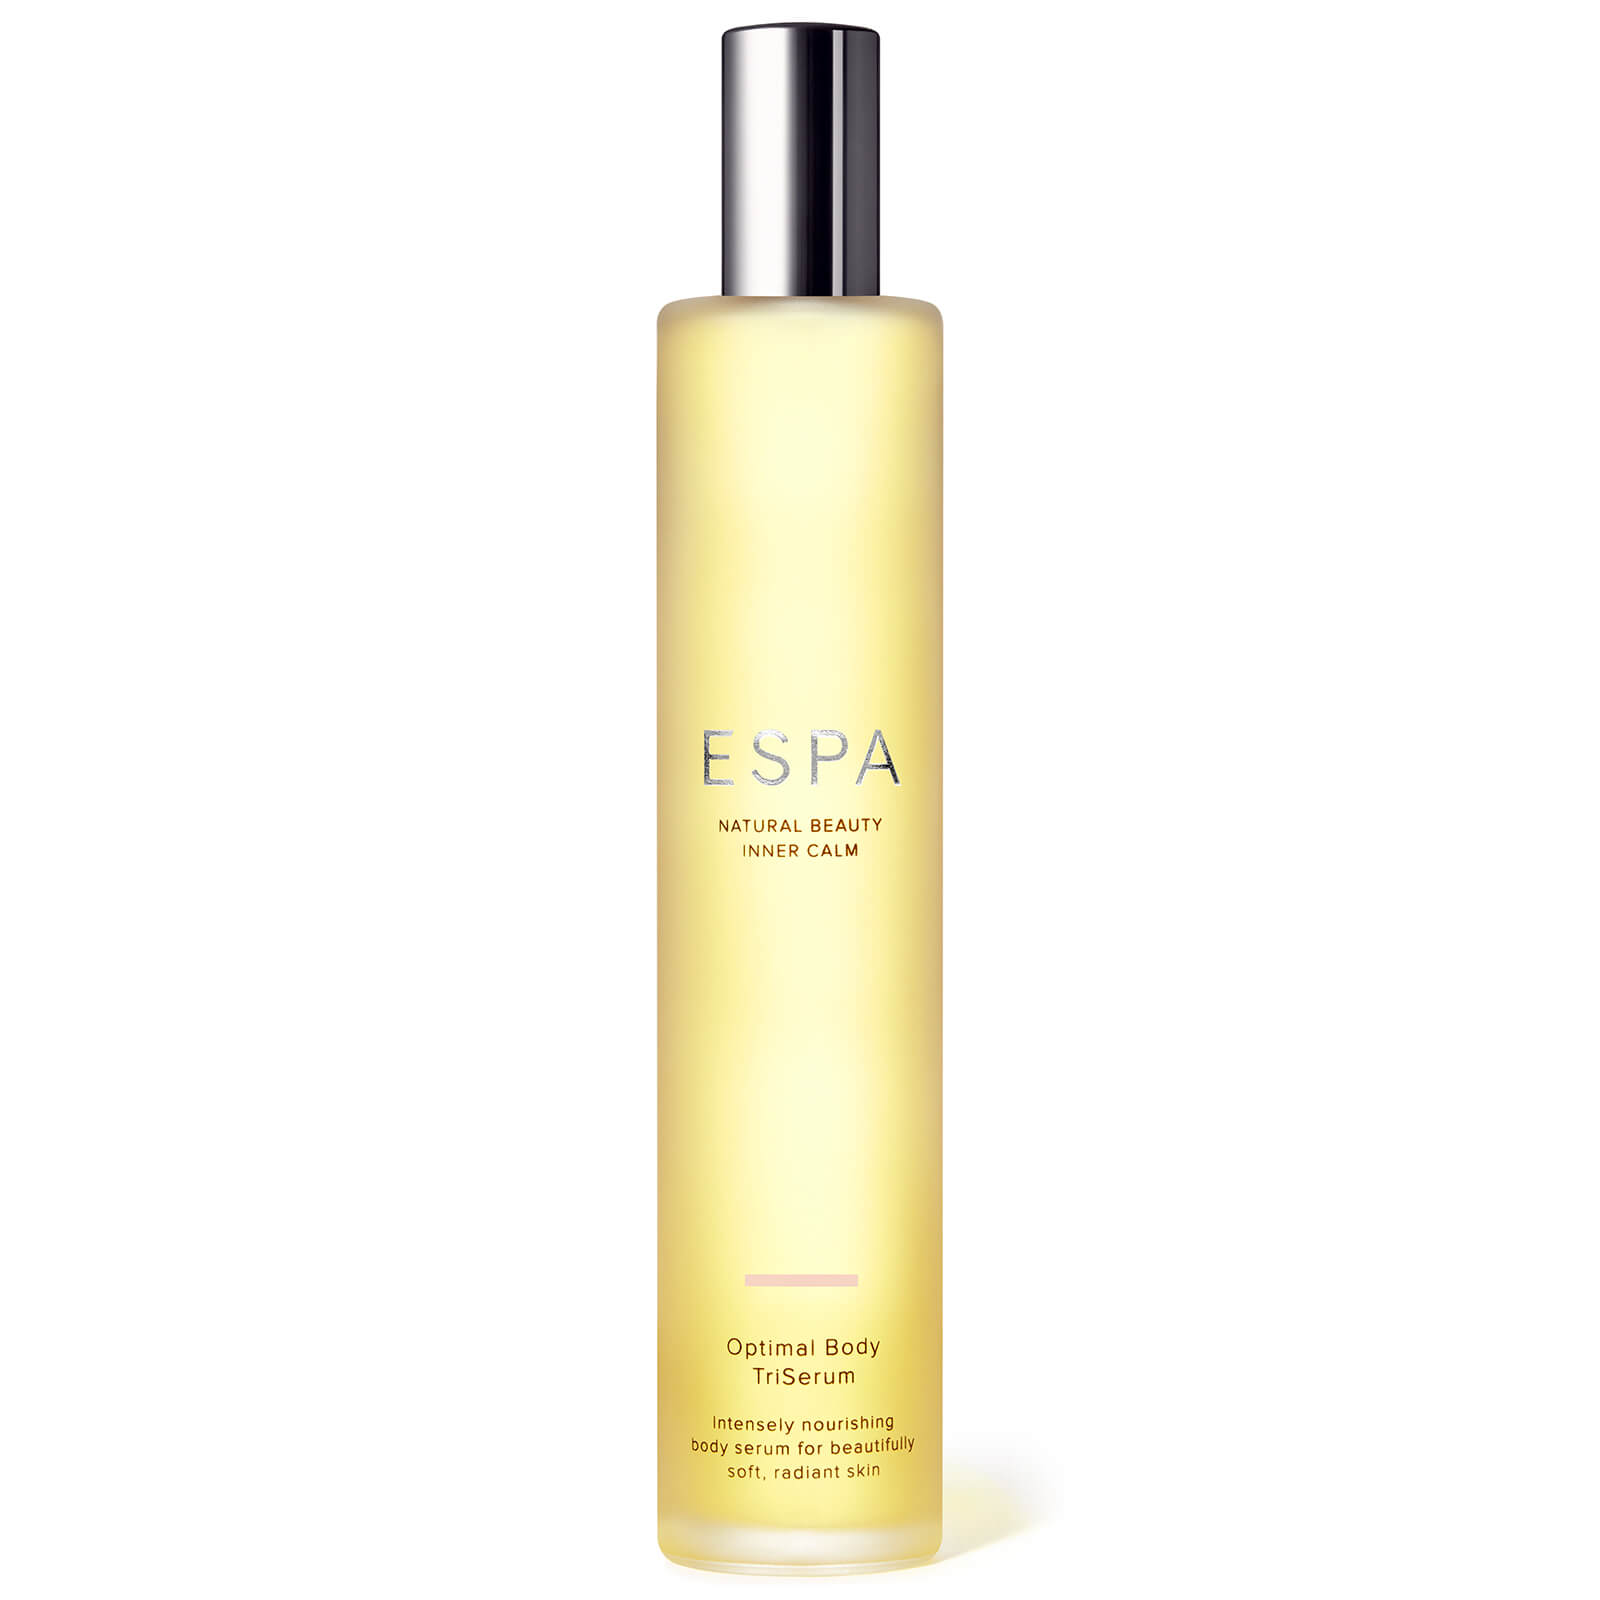 ESPA Optimal Body TriSerum 100ml